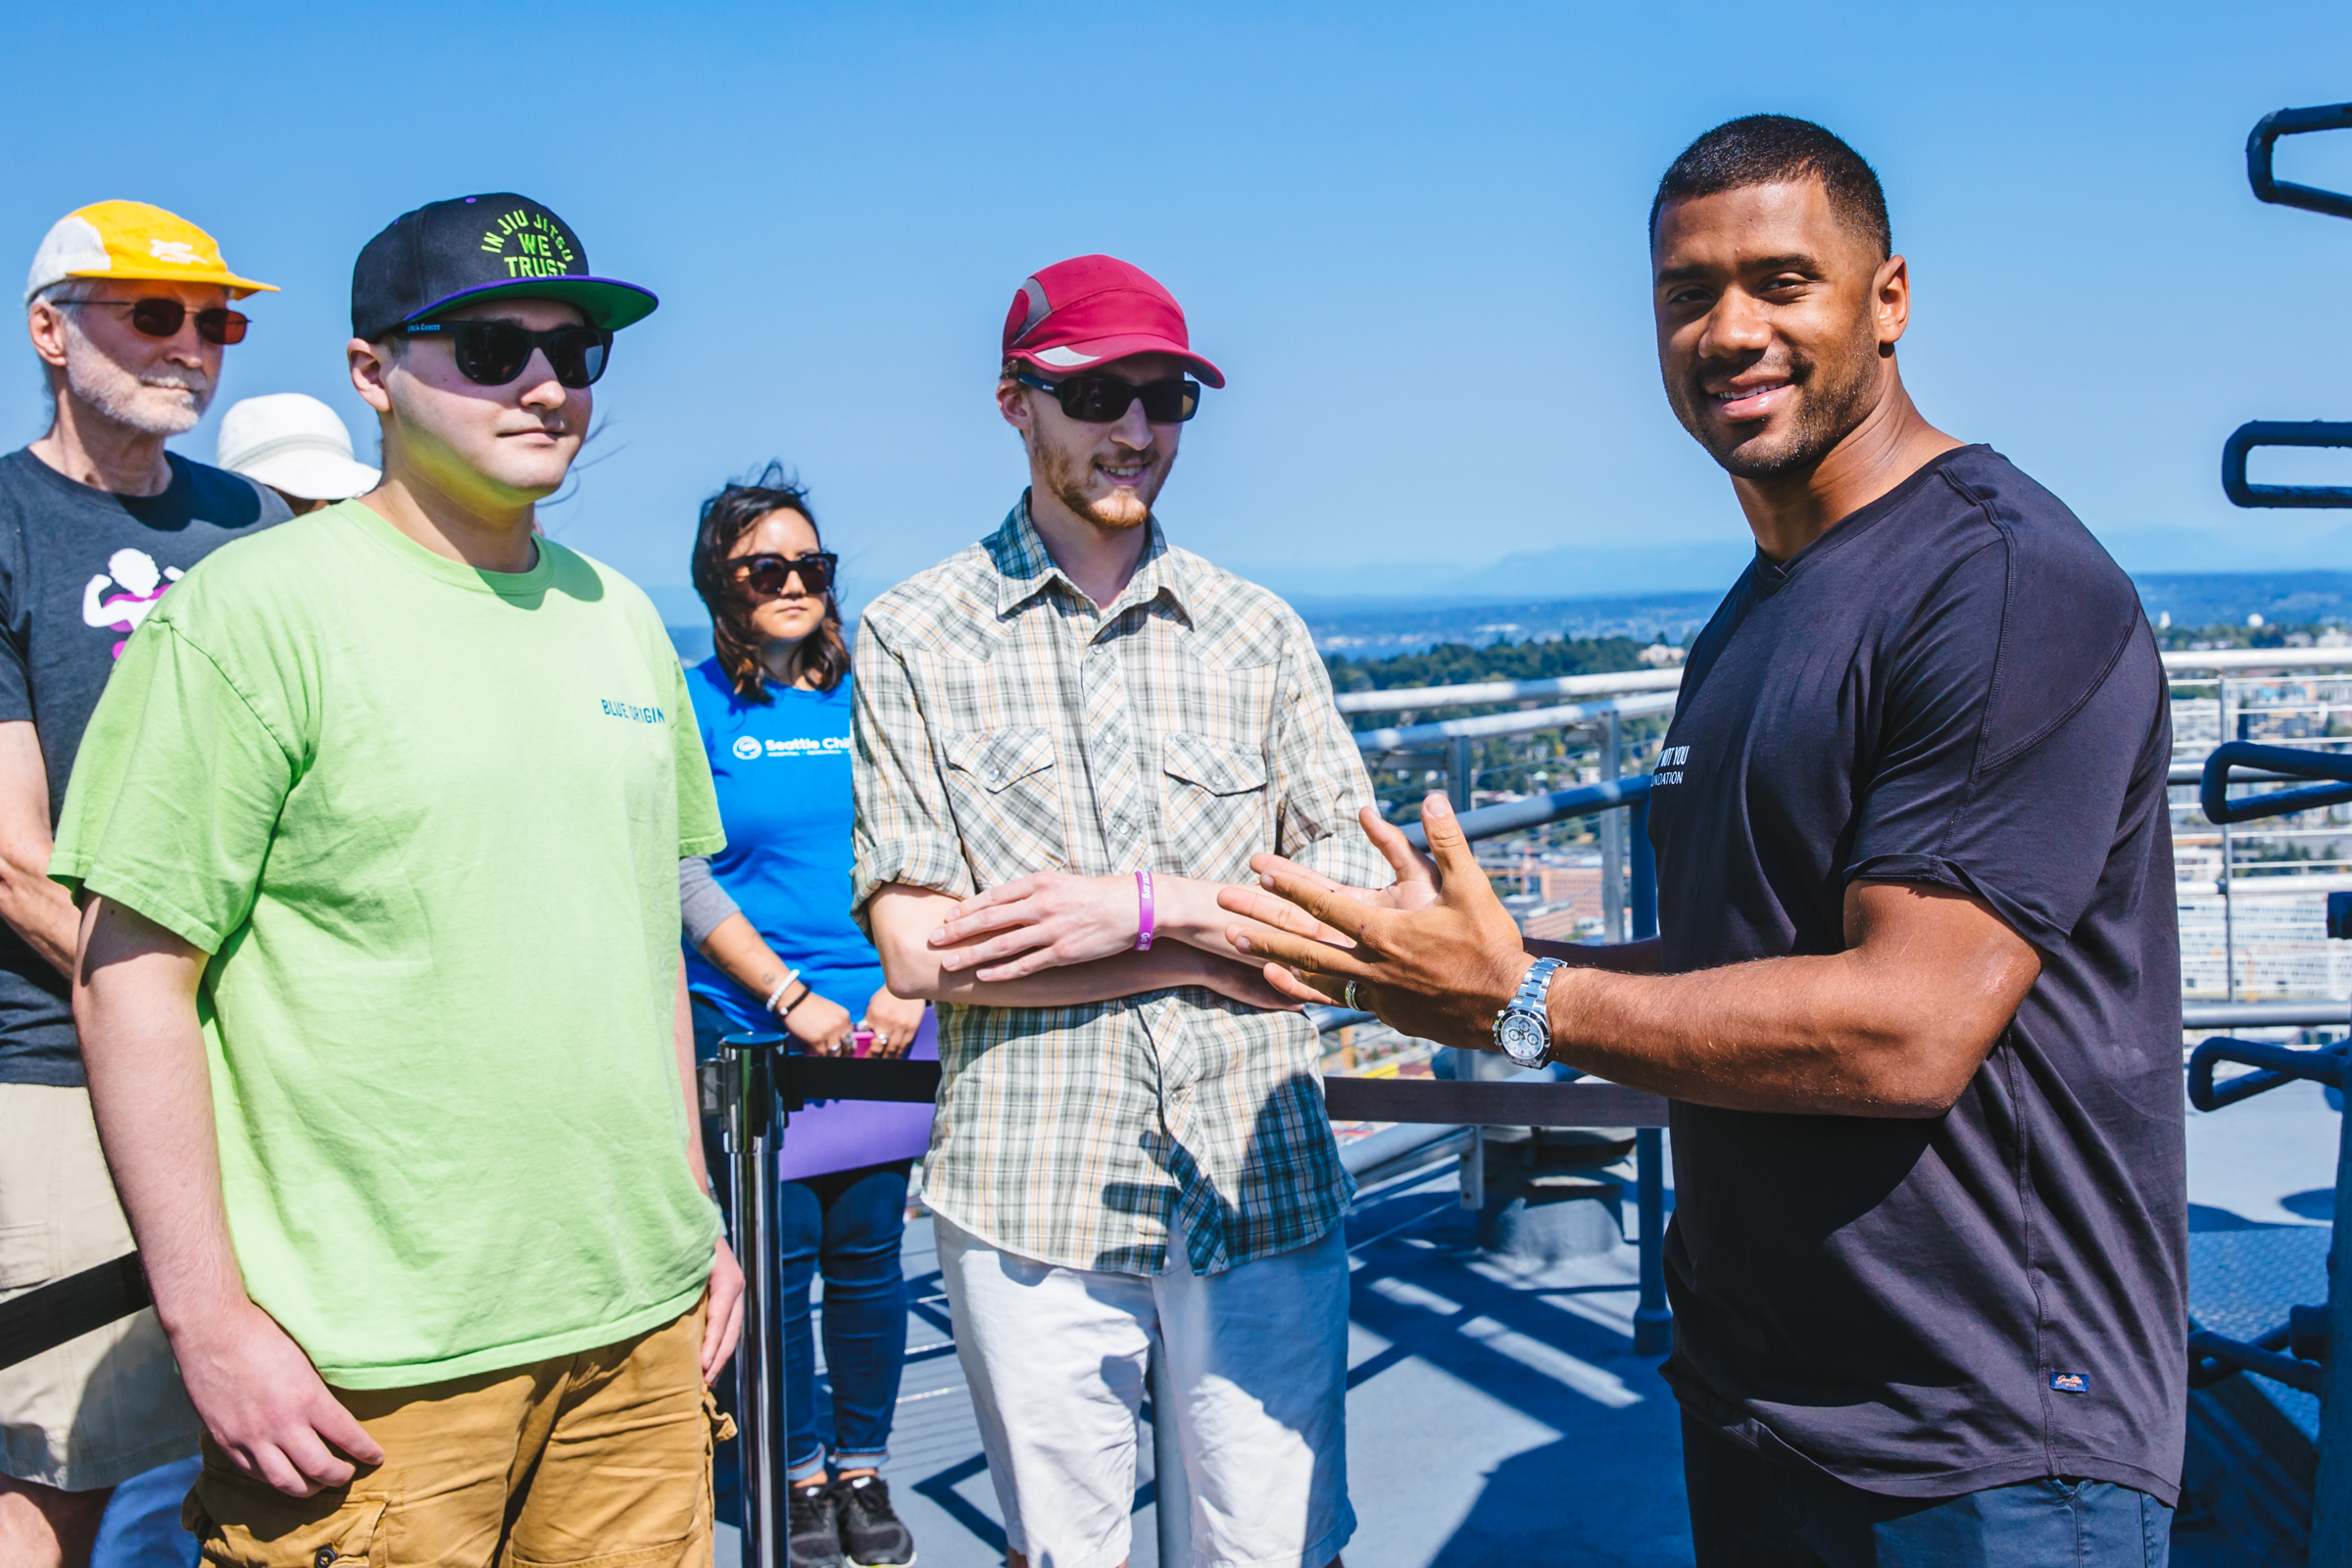 "Seahawks quarterback Russell Wilson raised the ""Strong Against Cancer"" flag on top of the Space Needle on Sunday, August 27 2017 to kick of Childhood Cancer Awareness Month, which is September. Wilson is Strong Against Cancer's Team Captain through his Why Not You Foundation, whose philanthropic efforts aim to put an end to pediatric cancer with the support of the community. More than 10,000 children in the U.S. will be diagnosed with cancer this year, yet pediatric cancers receive less than 3% of the National Cancer Institute budget for research. (Image: Sunita Martini / Seattle Refined)"